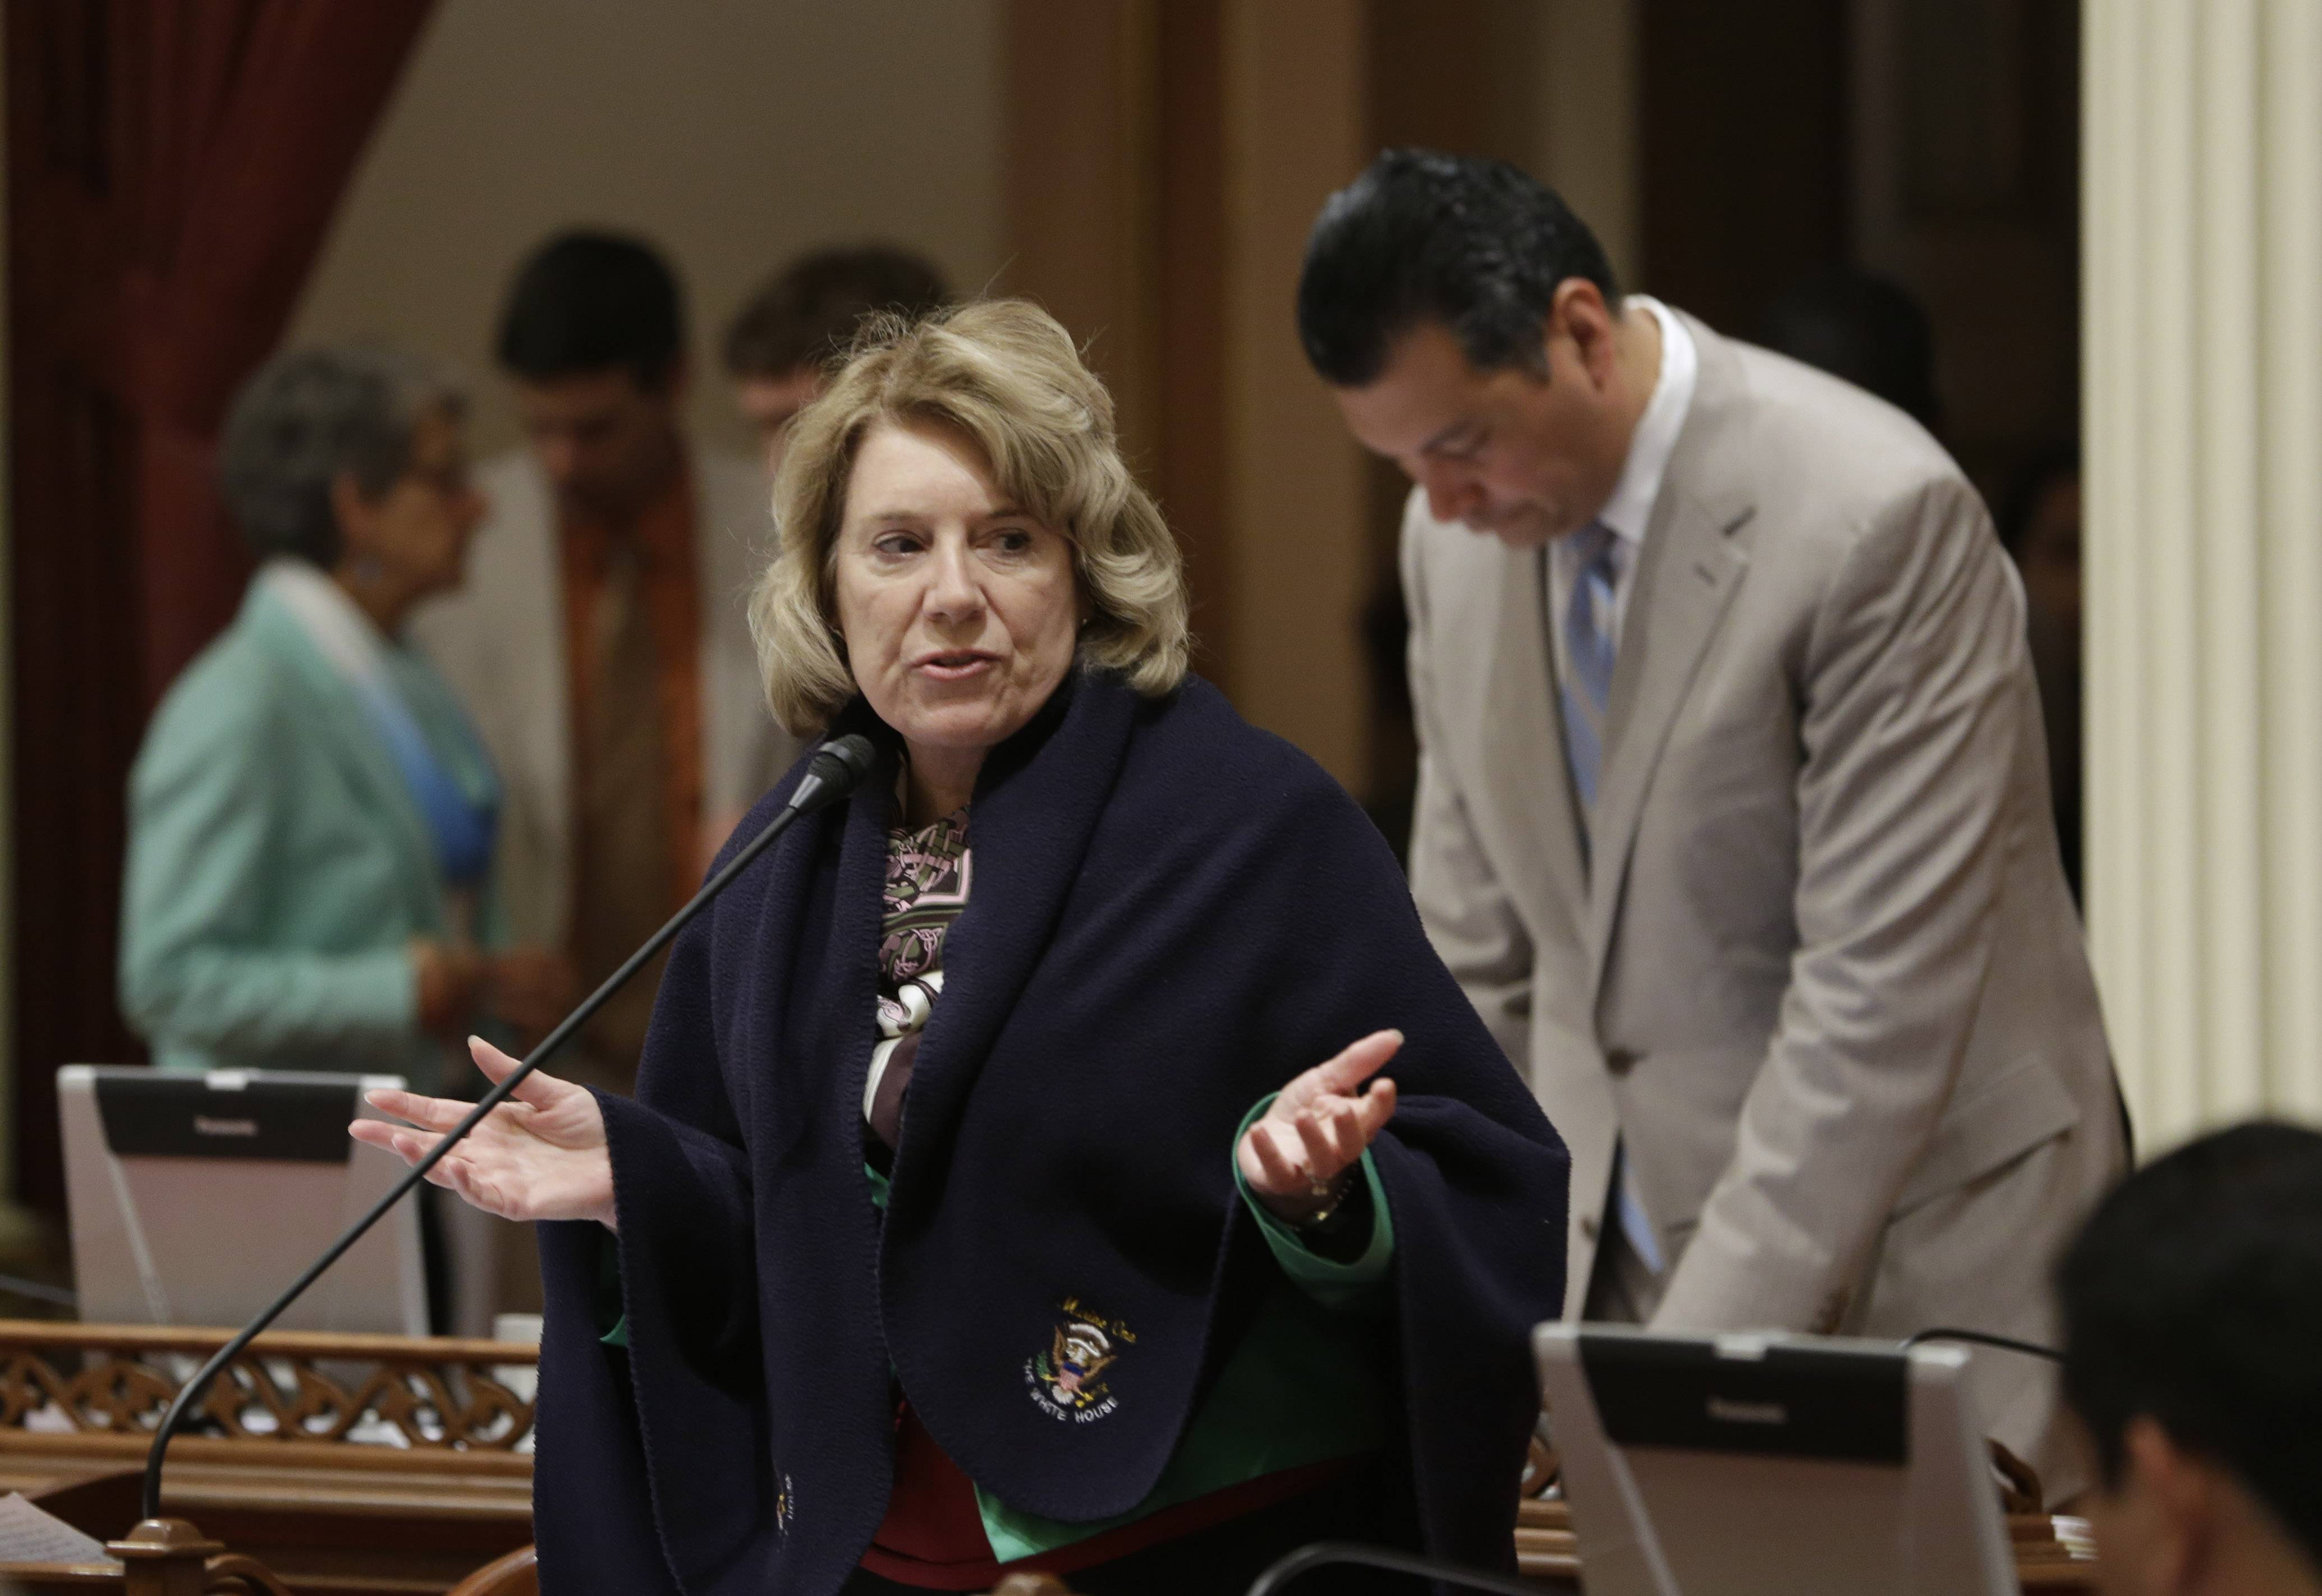 State Sen. Jean Fuller, R-Bakersfield, urged lawmakers to reject legislation Friday that would make California the first state to ban single-use plastic bags.